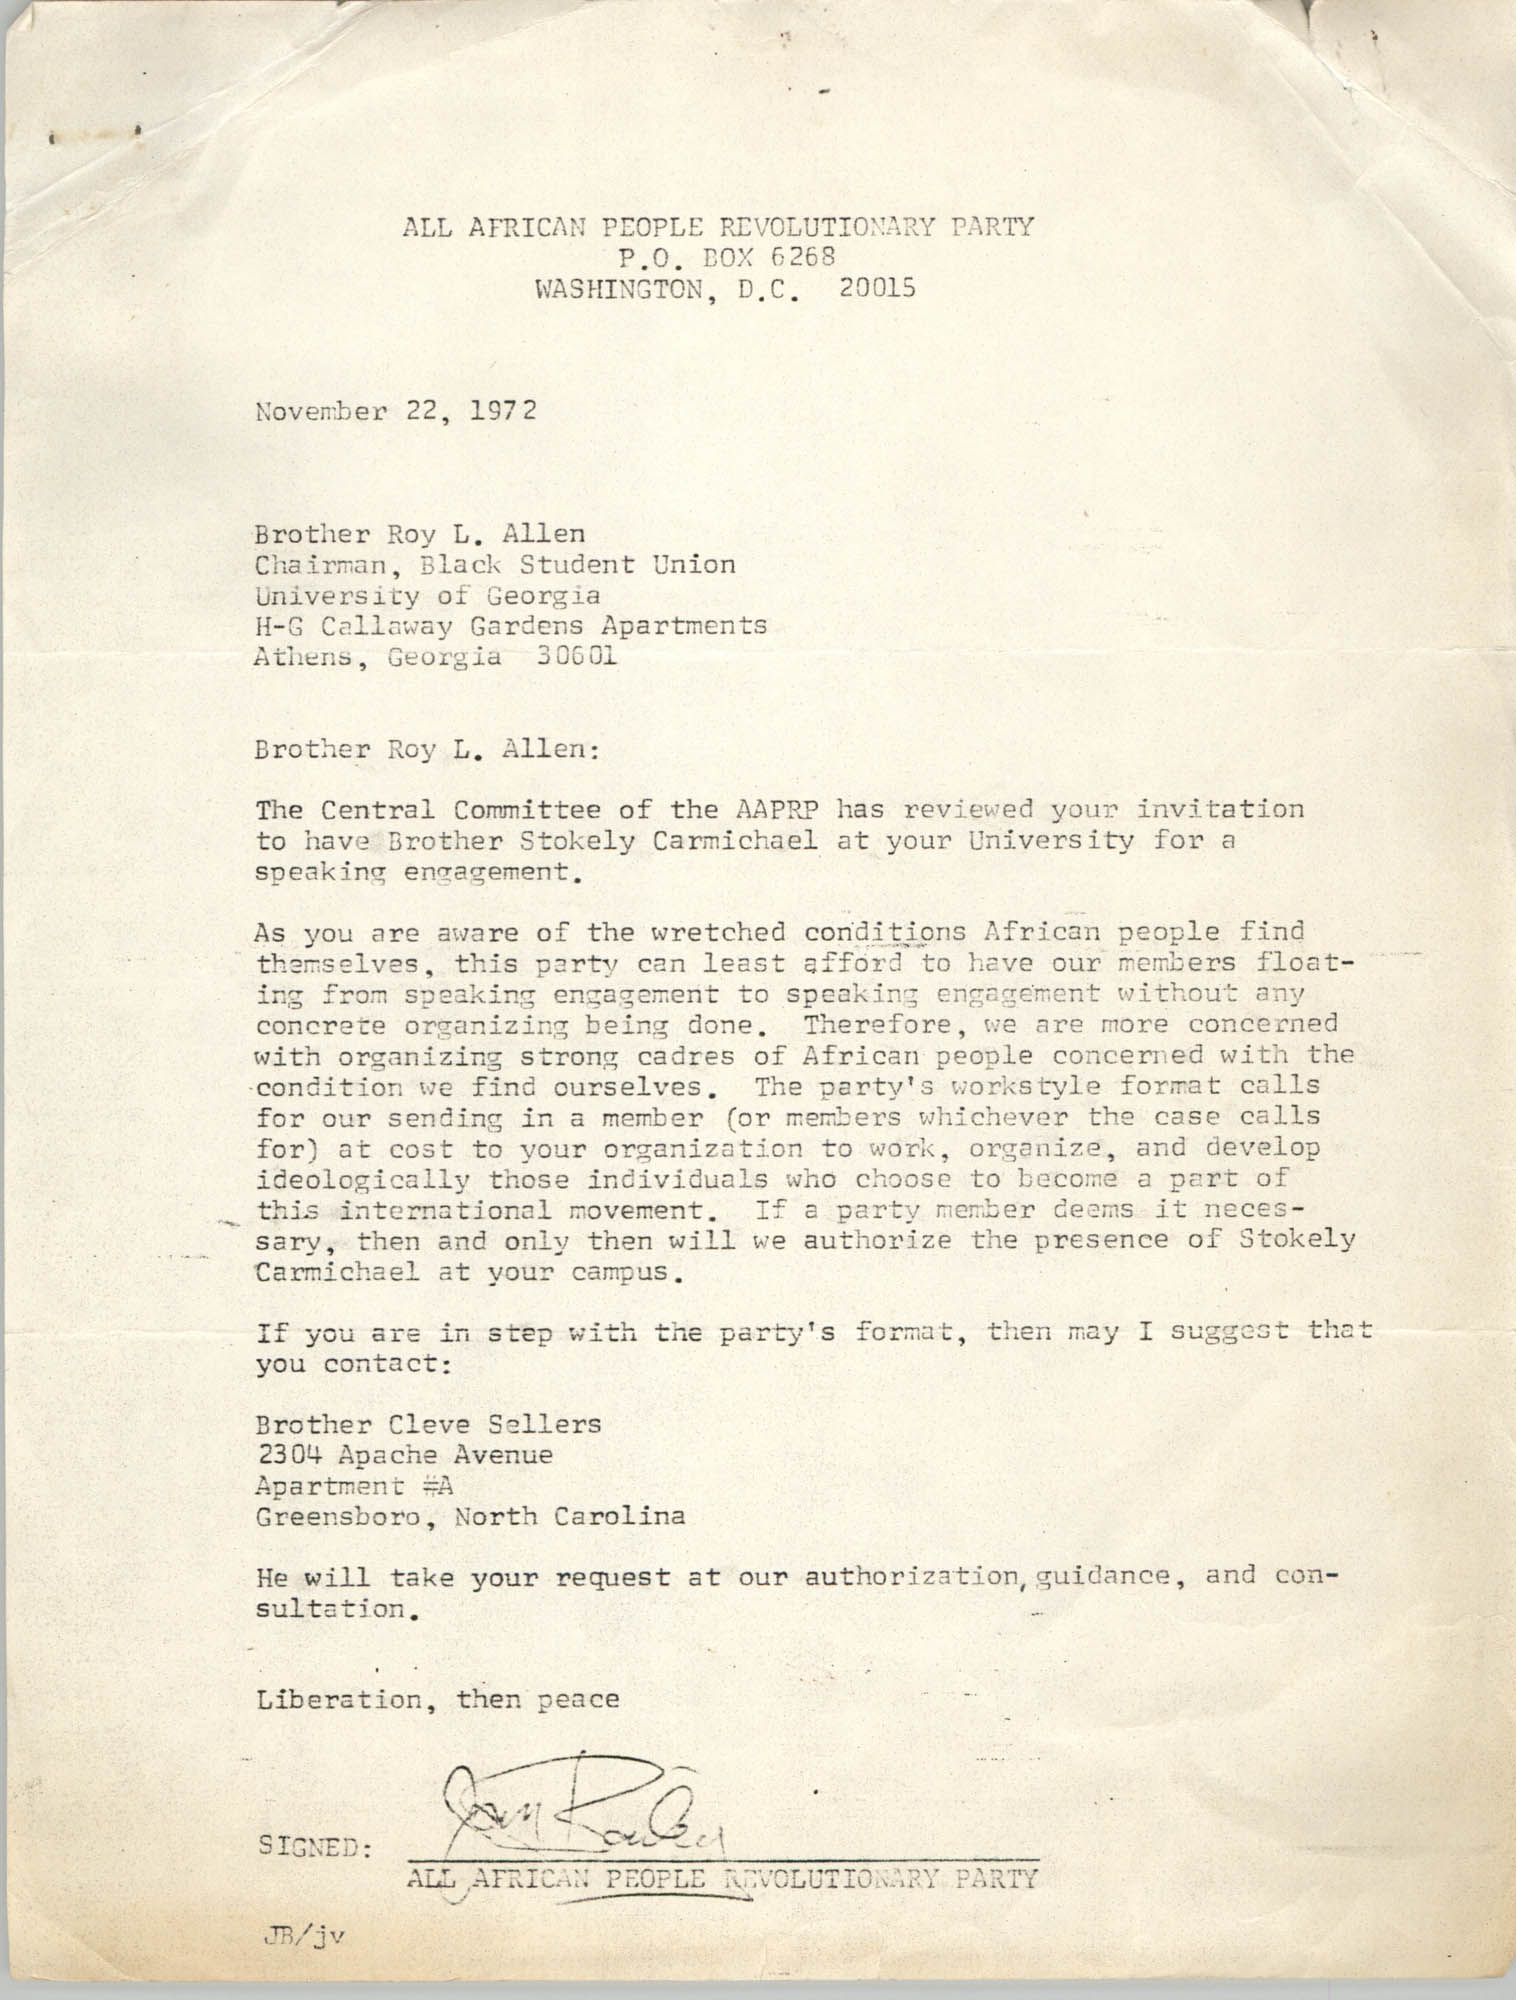 Letter from Jan Bailey to Roy L. Allen, November 22, 1972